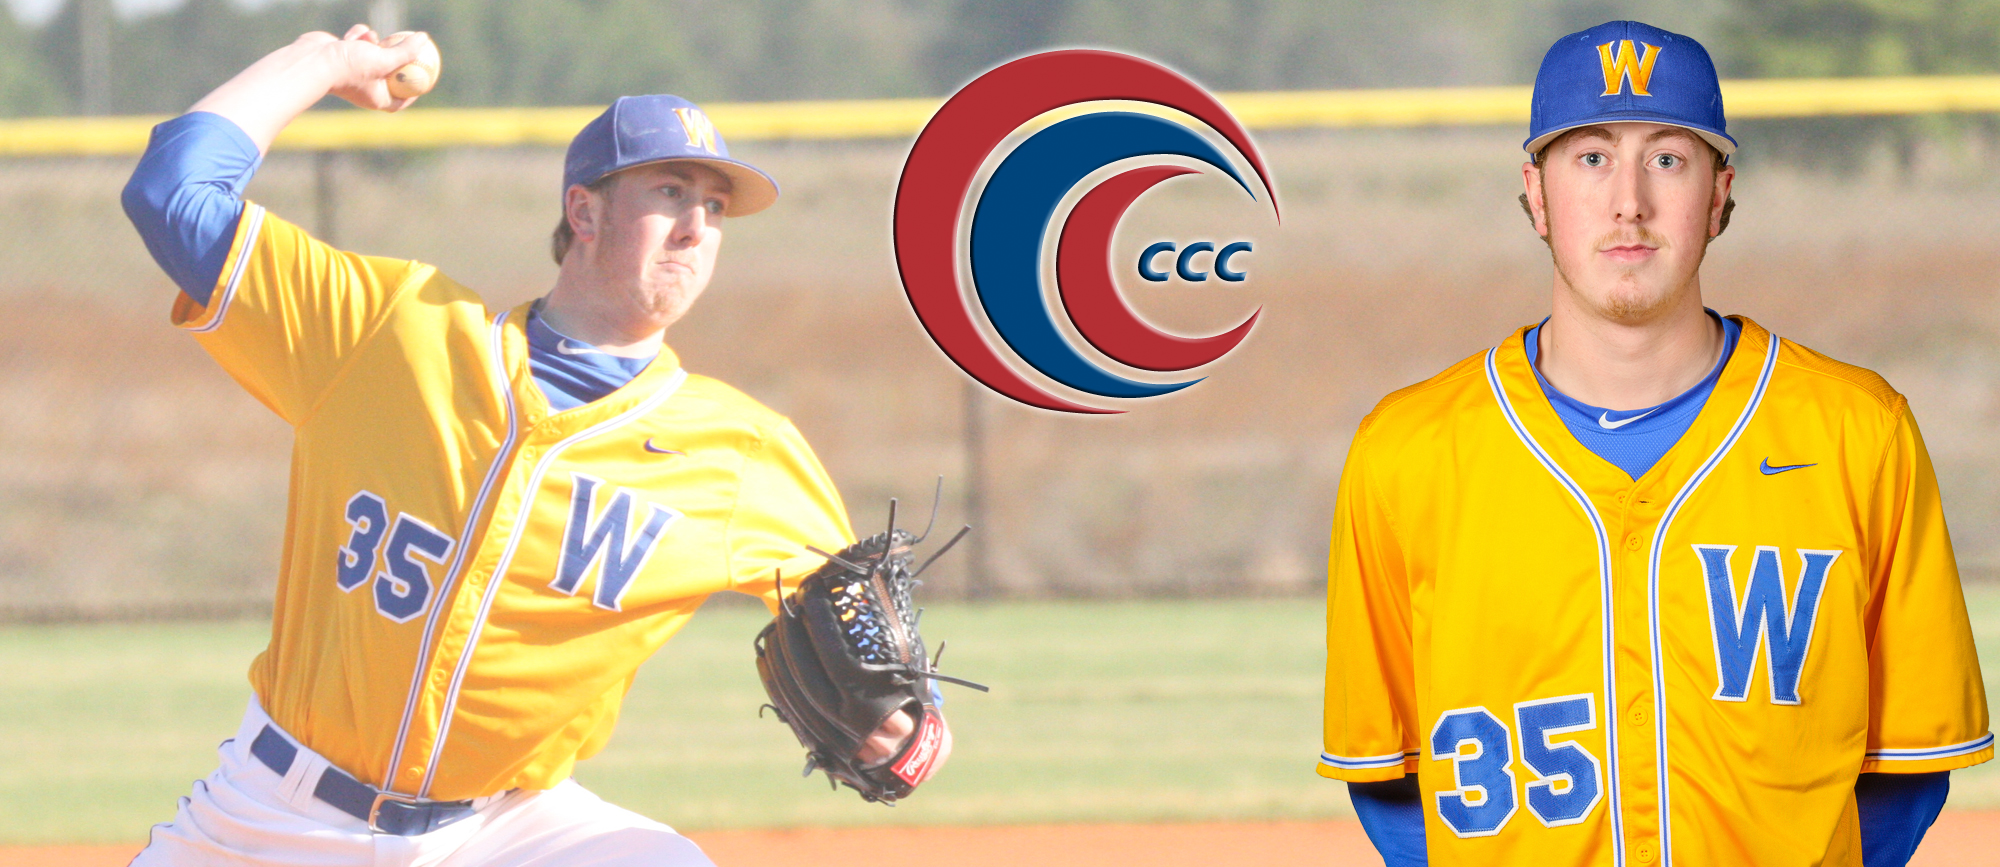 Jake Kawiecki Earns First Career CCC Pitcher of the Week Award